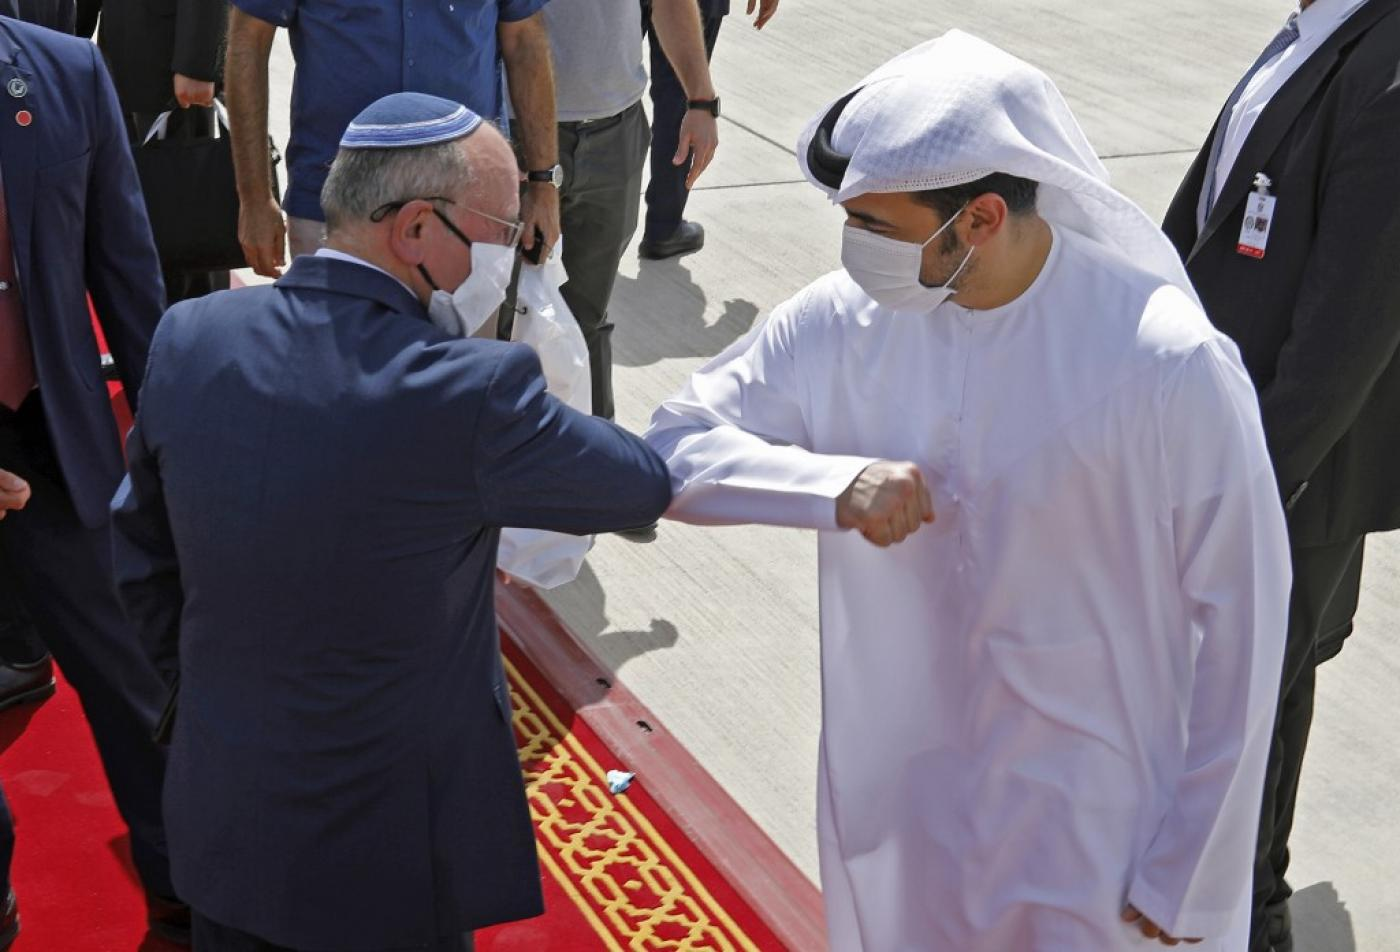 Israeli National Security Advisor Meir Ben-Shabbat elbow bumps with an Emirati official on 1 September.